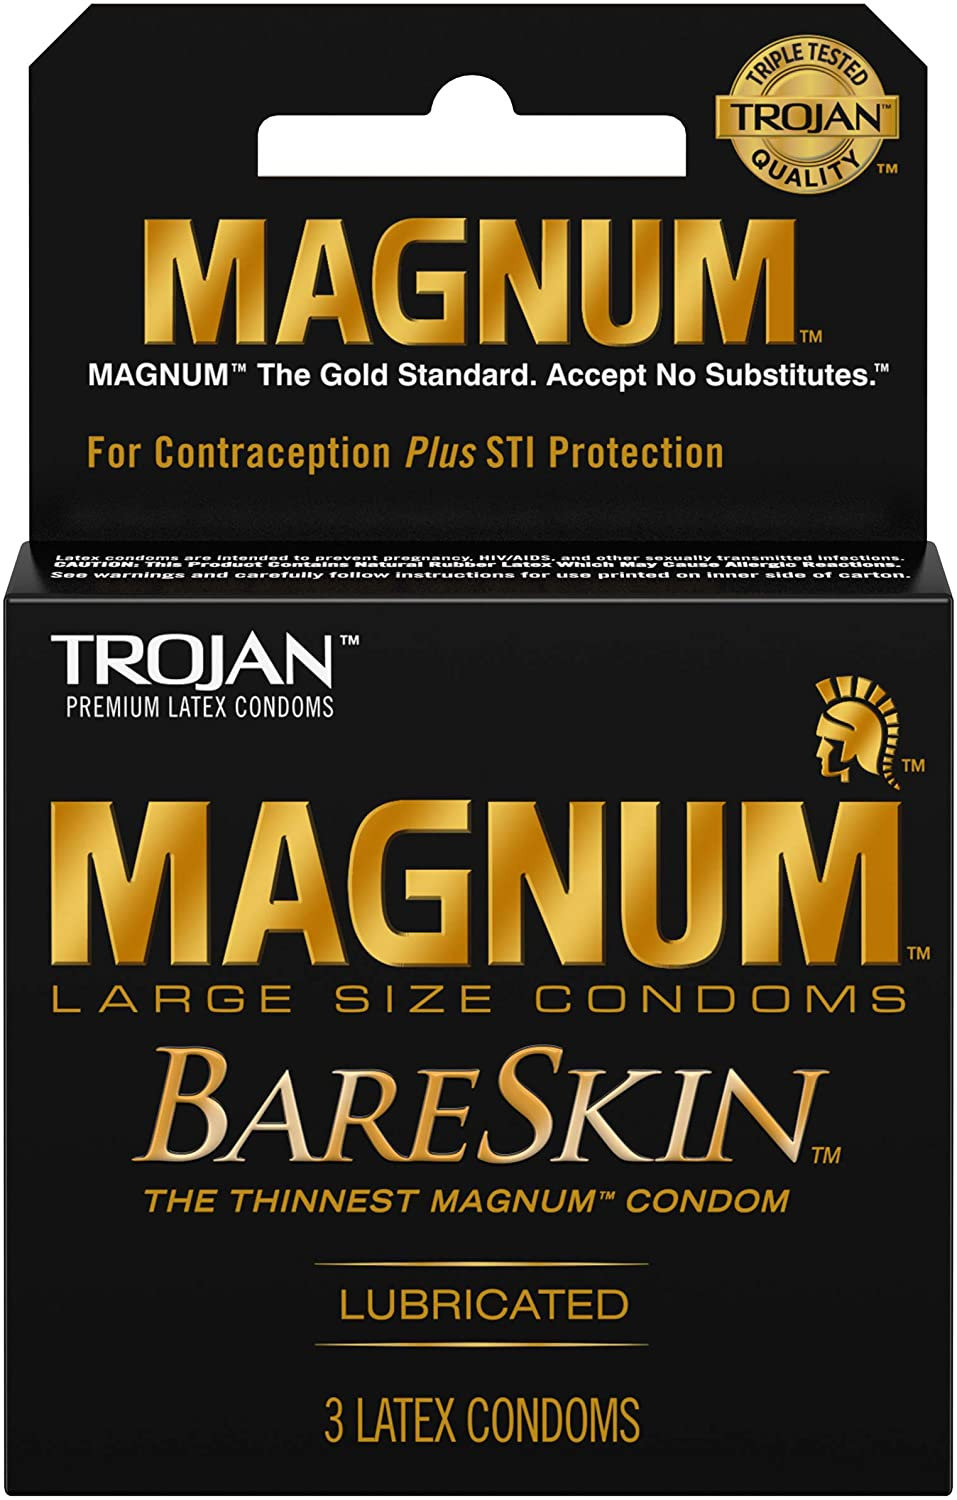 TROJAN Challenge the lowest price of Japan Magnum Year-end annual account Bareskin Lubricated Condoms 3 12 Pack of ea